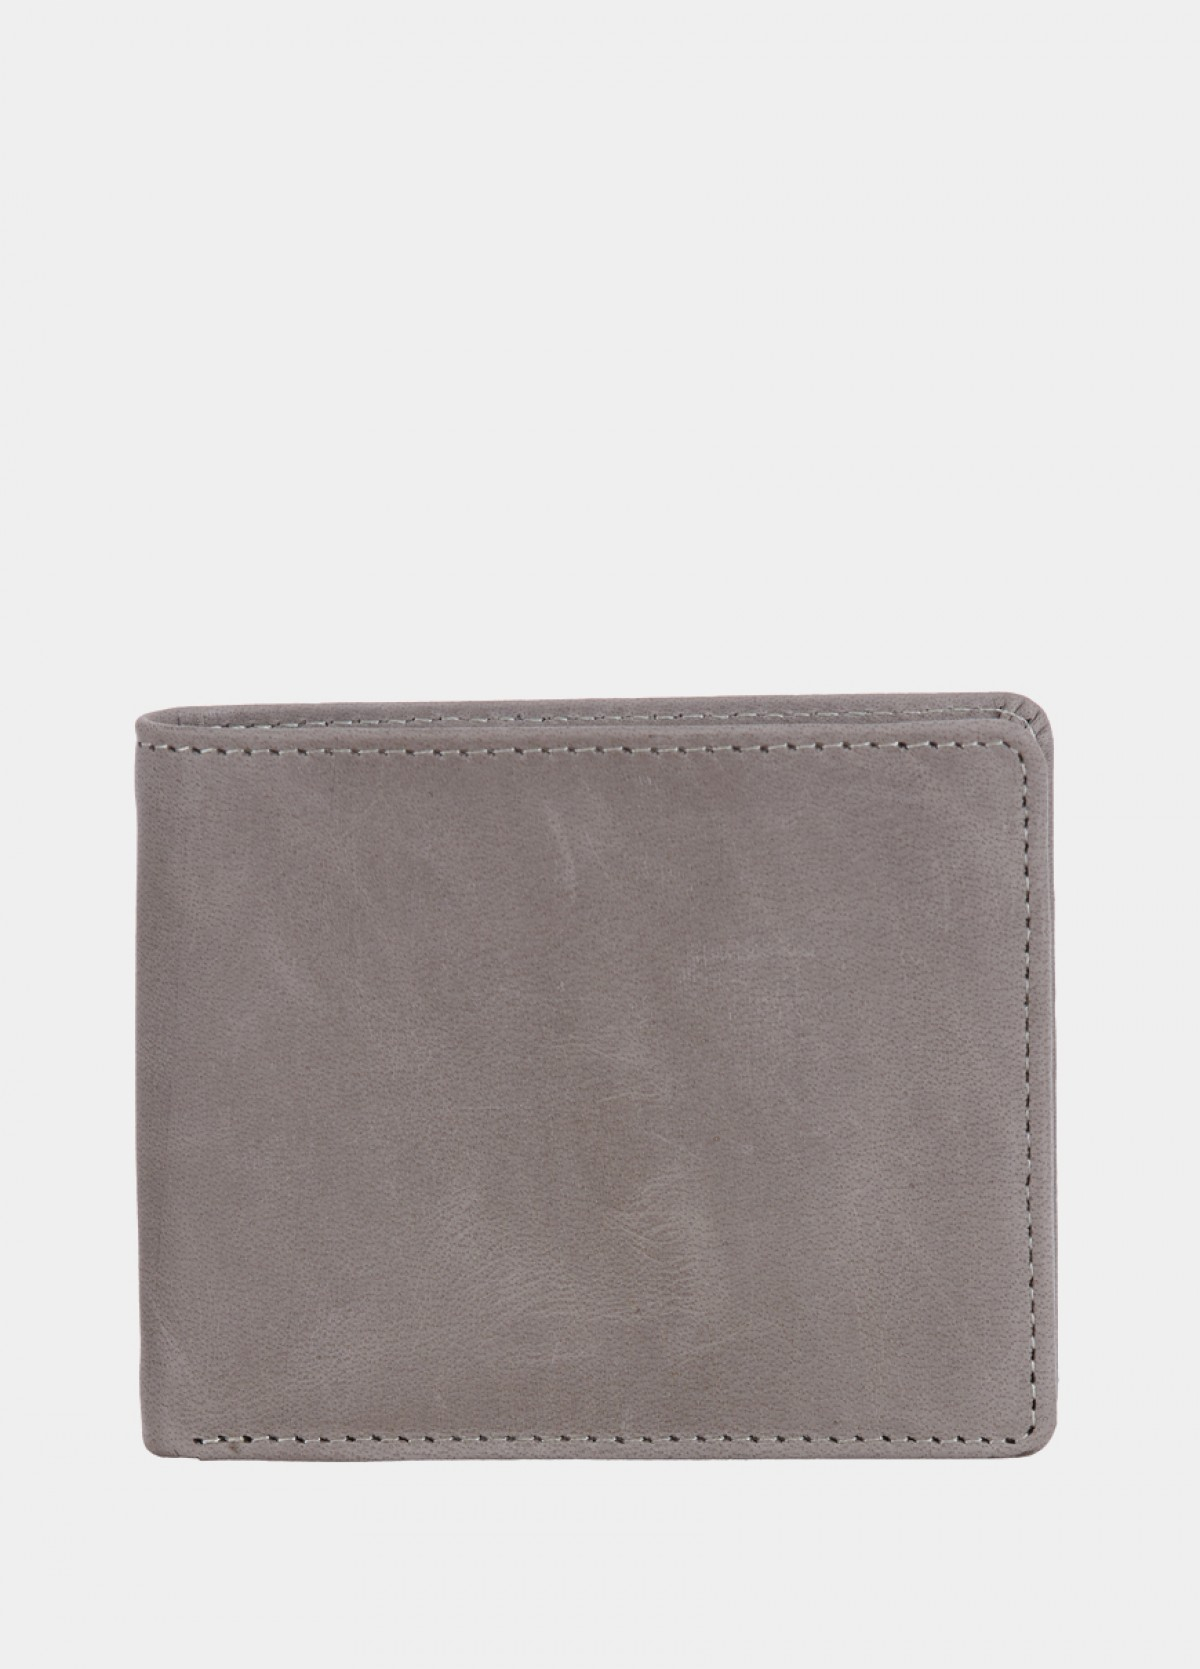 The Grey Leather Men Wallet